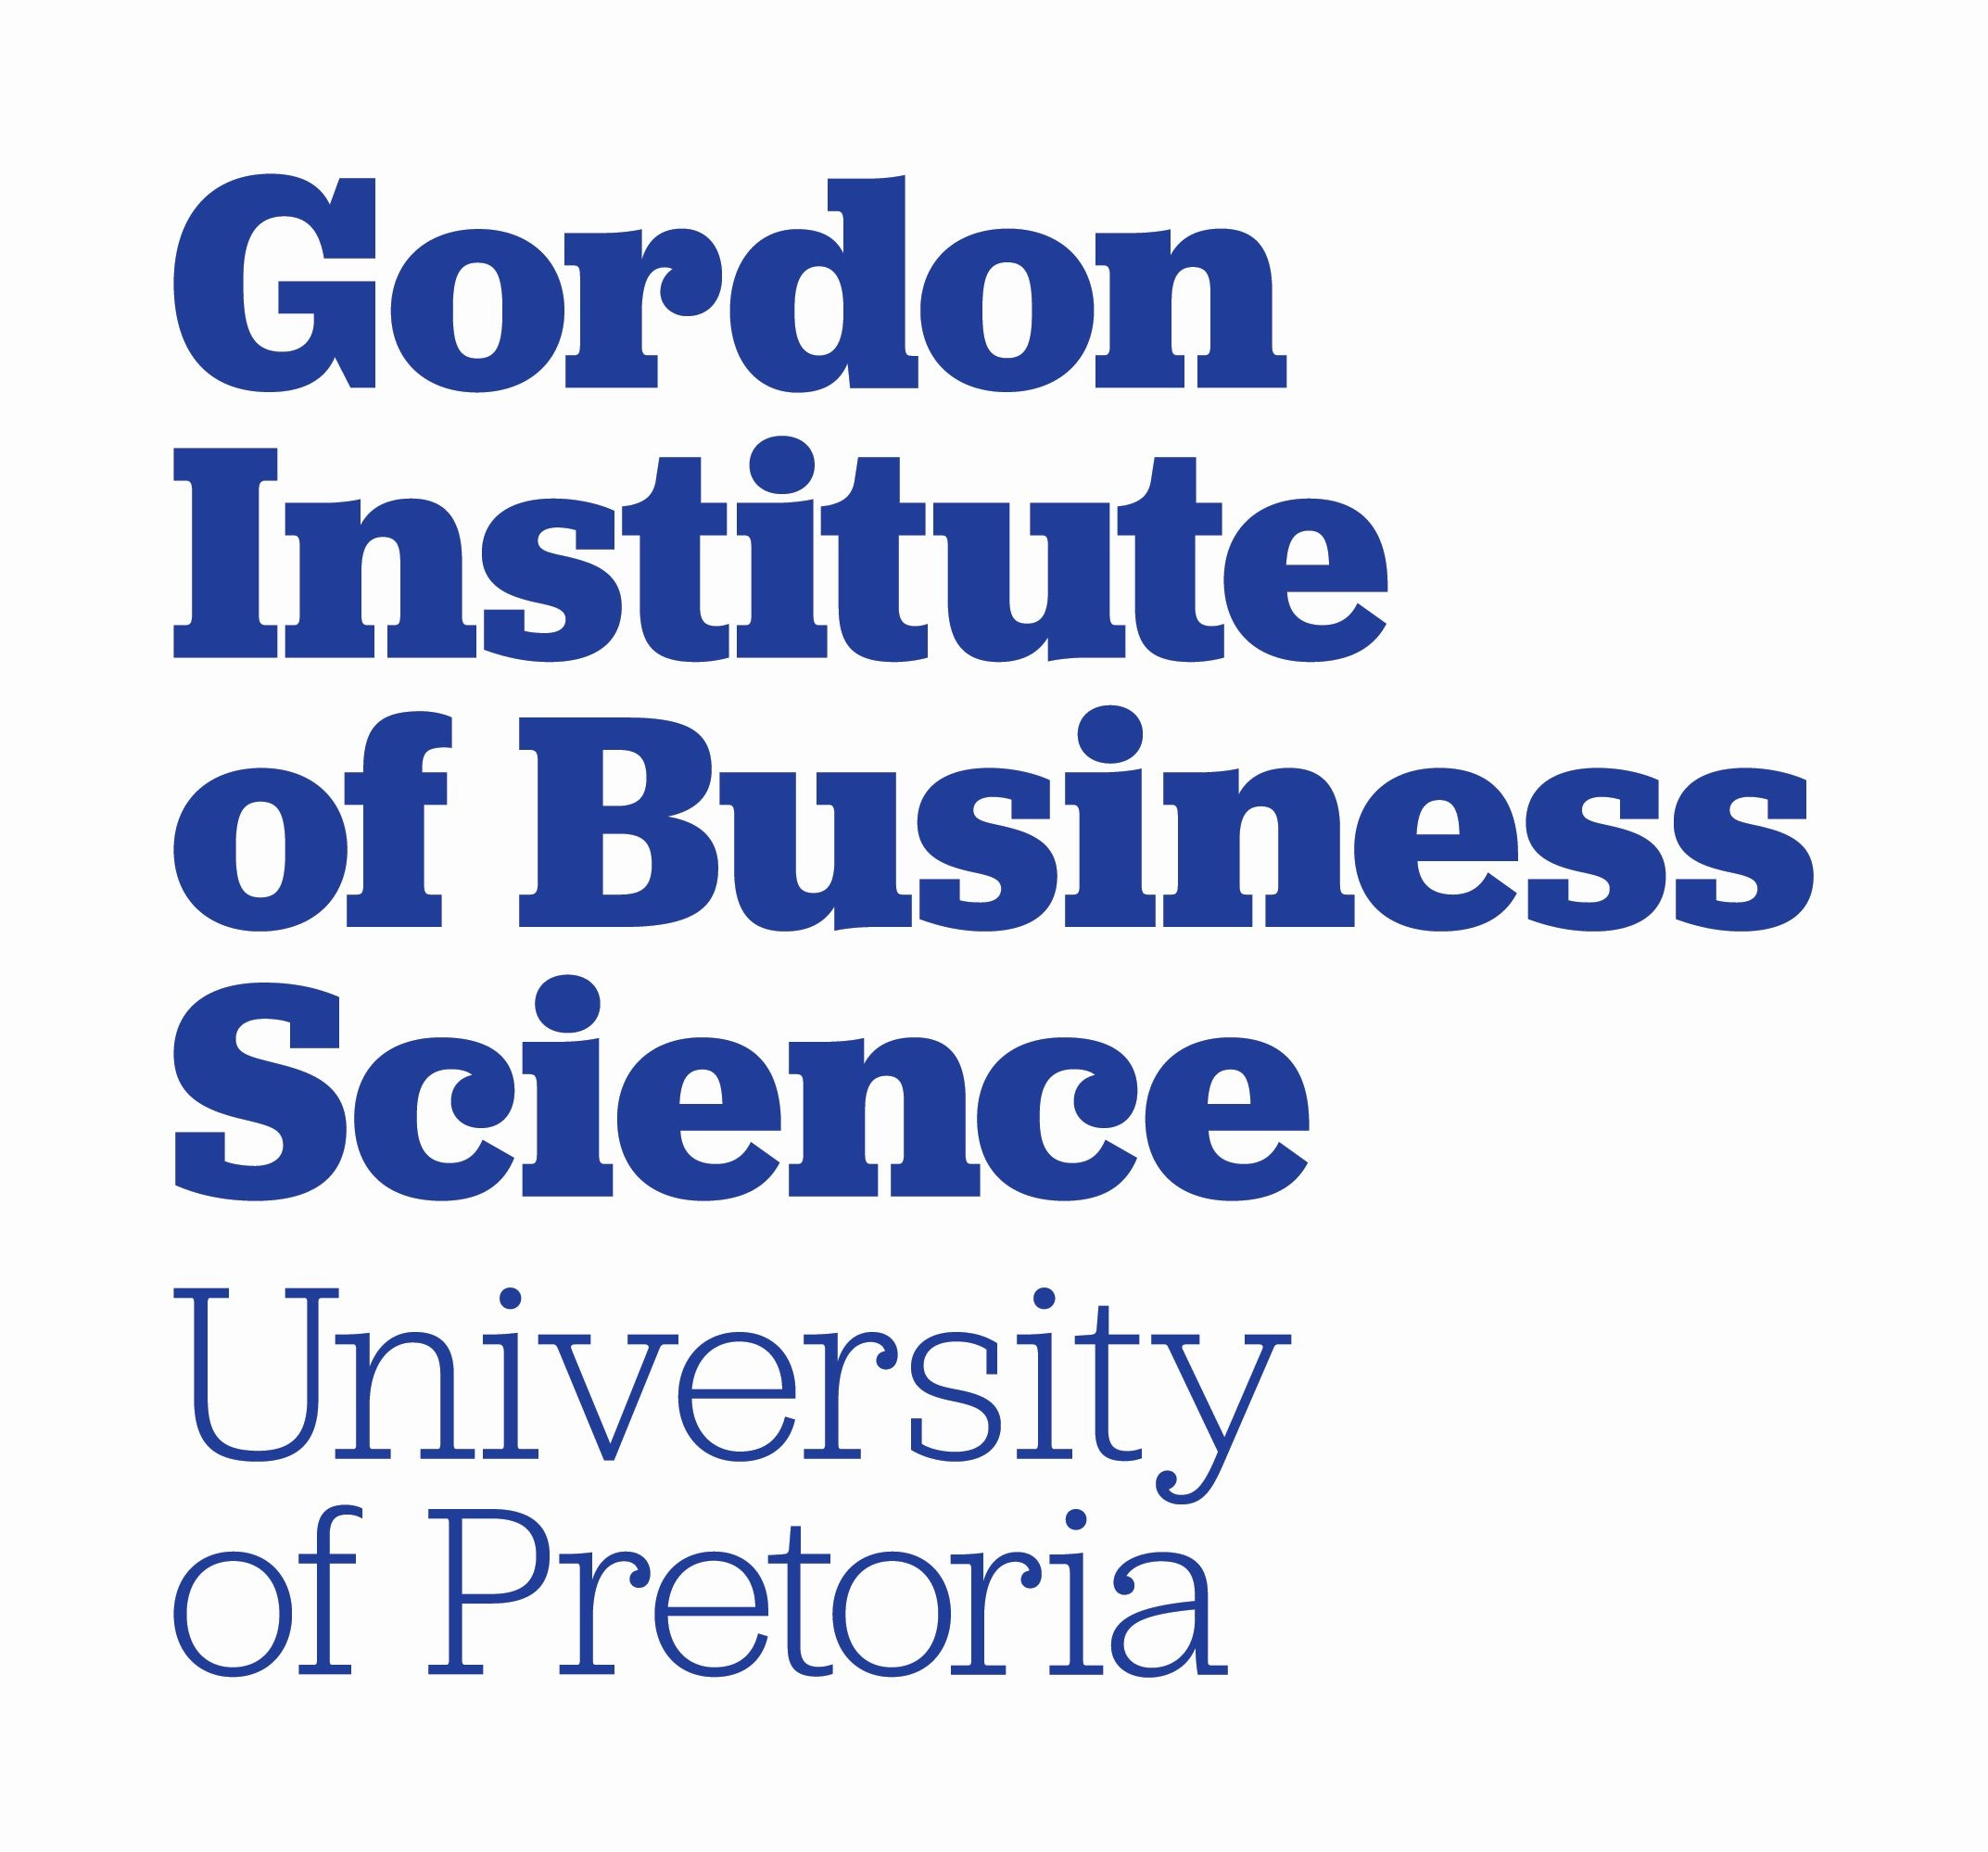 GIBS-Gordon Institute of Business Science